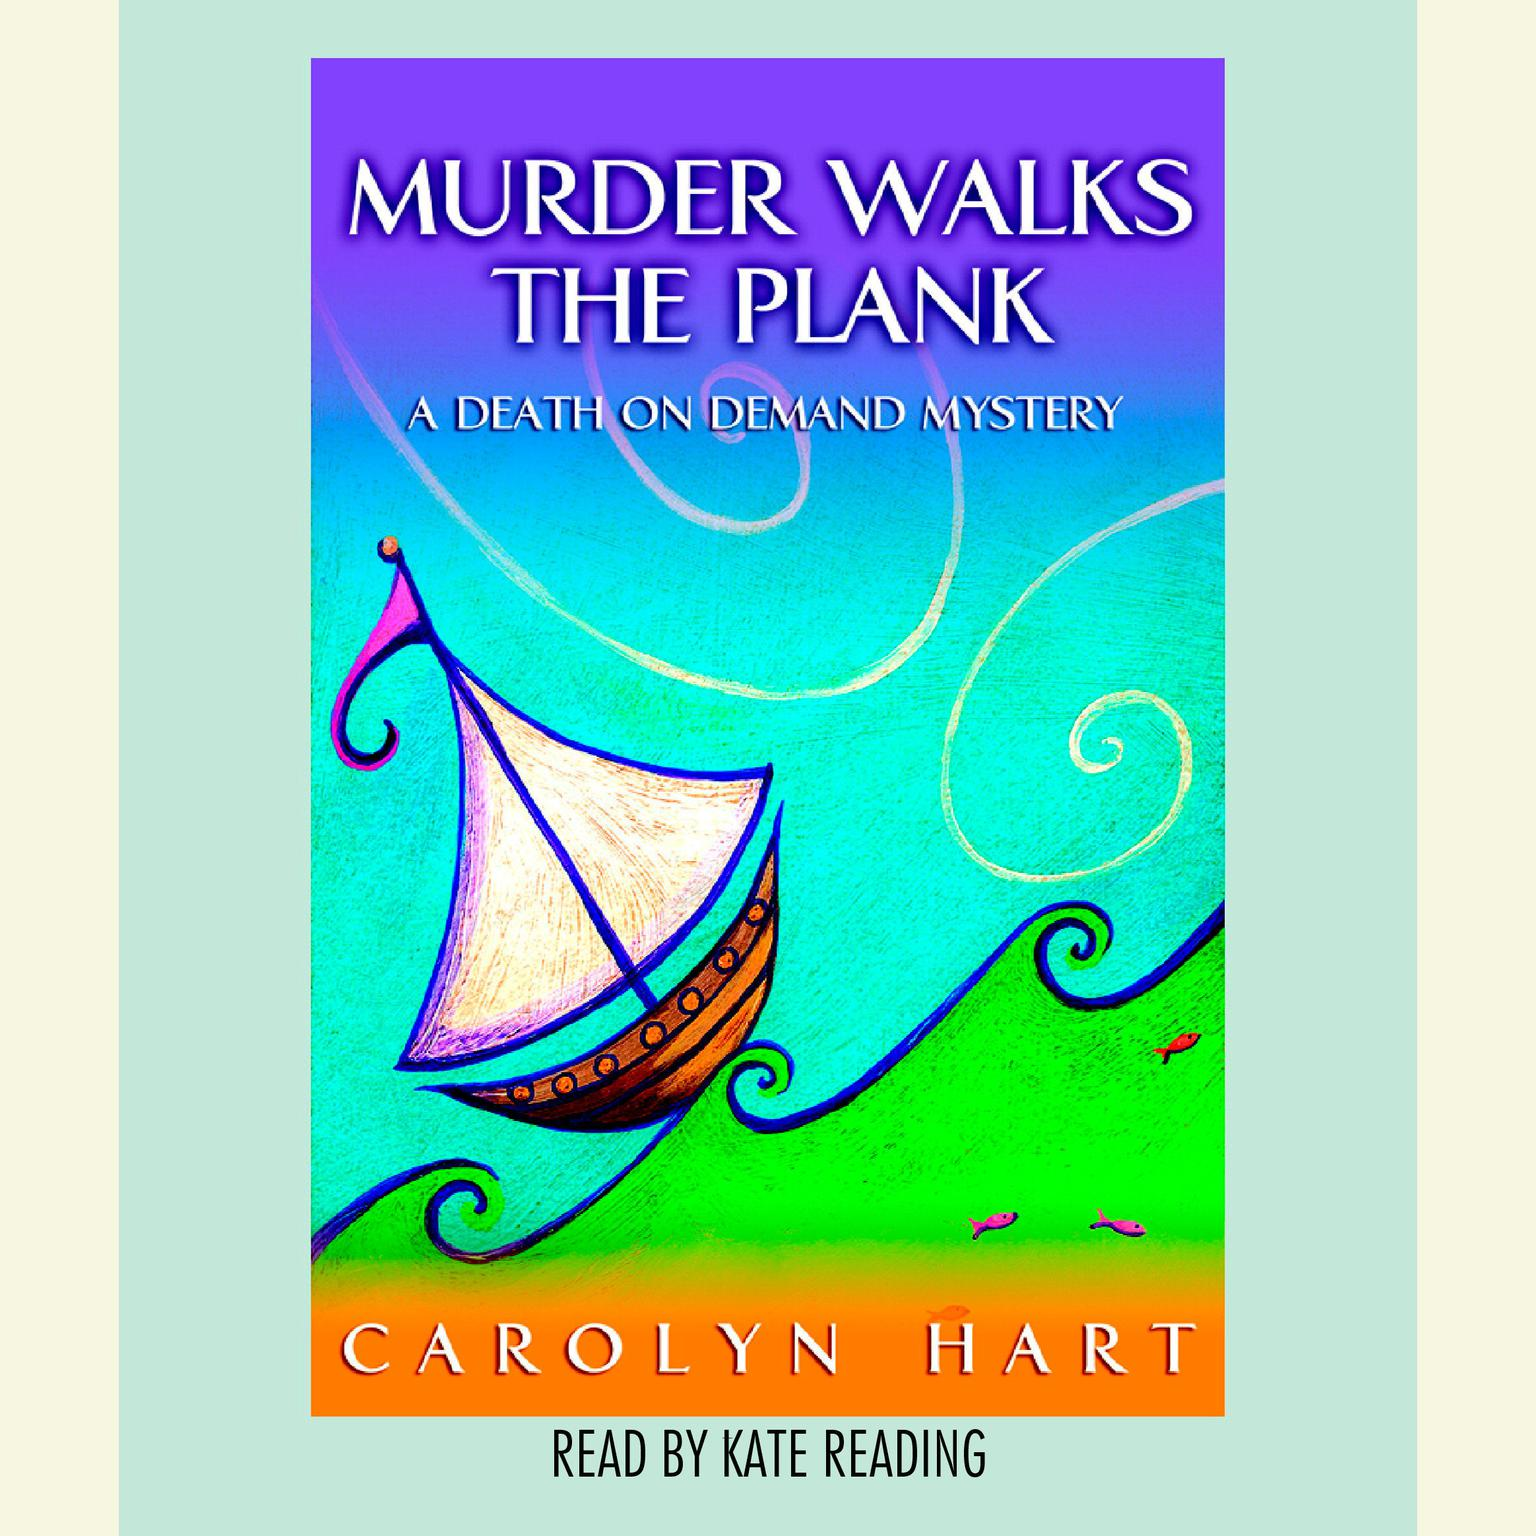 Printable Murder Walks the Plank Audiobook Cover Art